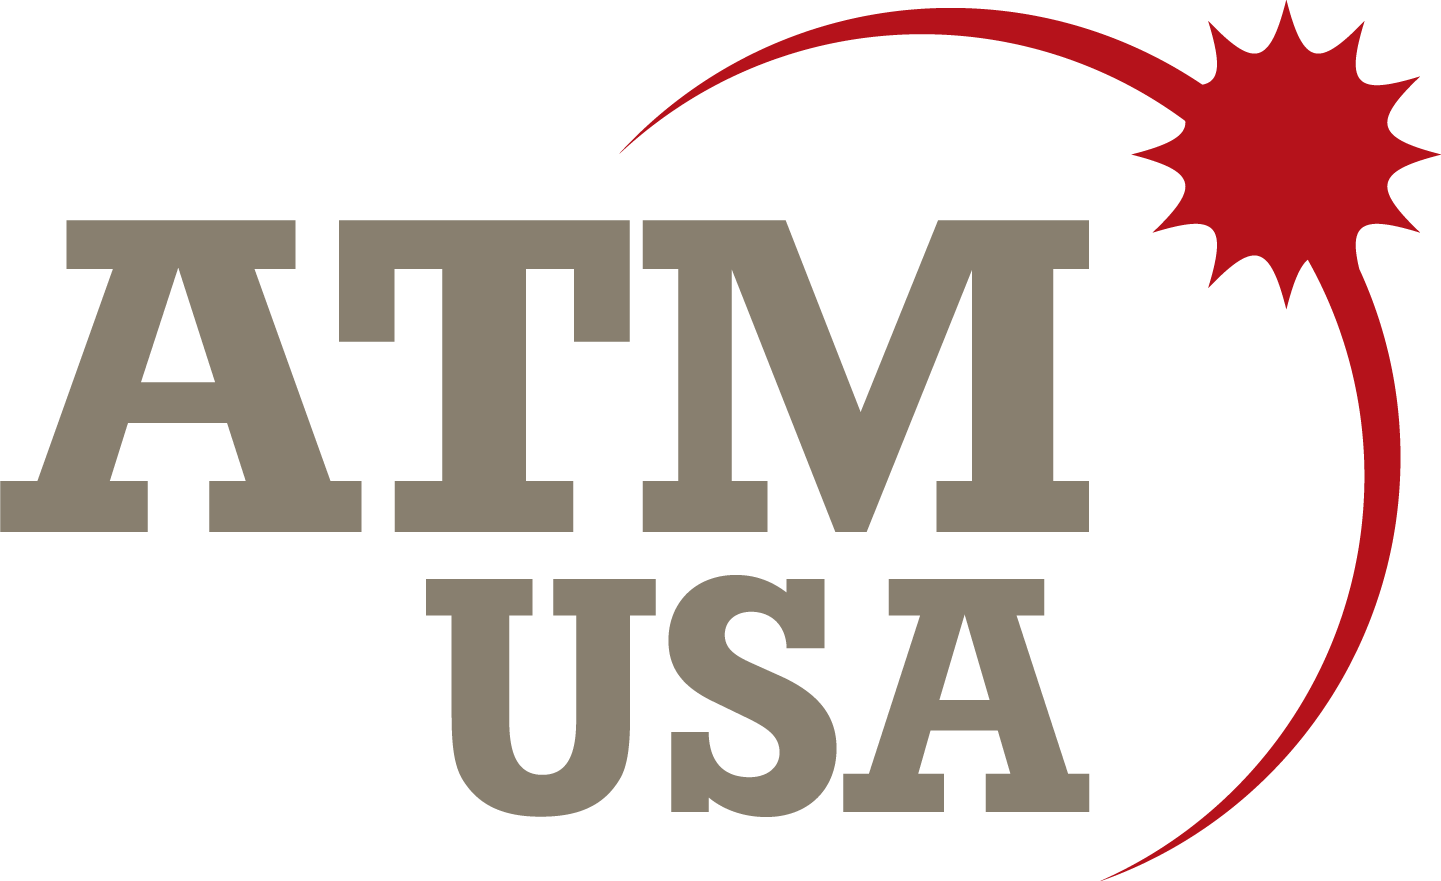 ATM USA specializes in ATM outsourcing